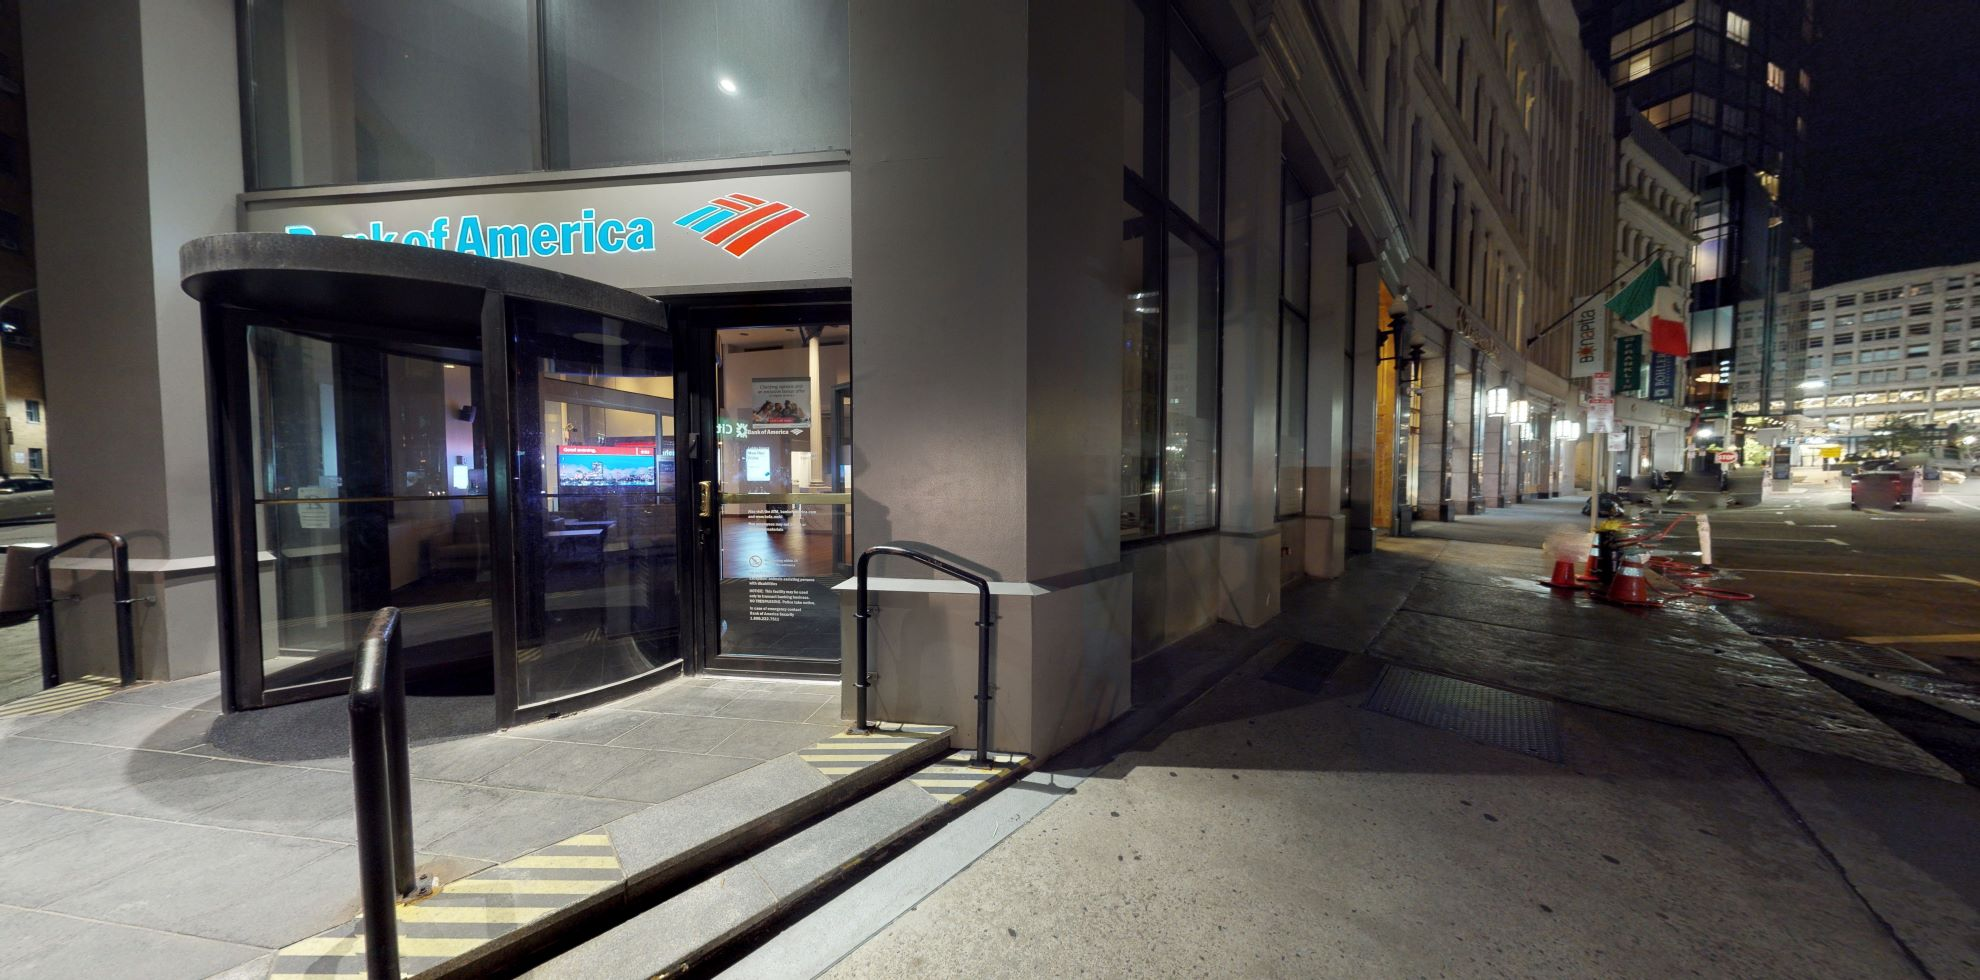 Bank of America financial center with walk-up ATM   65 Franklin St, Boston, MA 02110